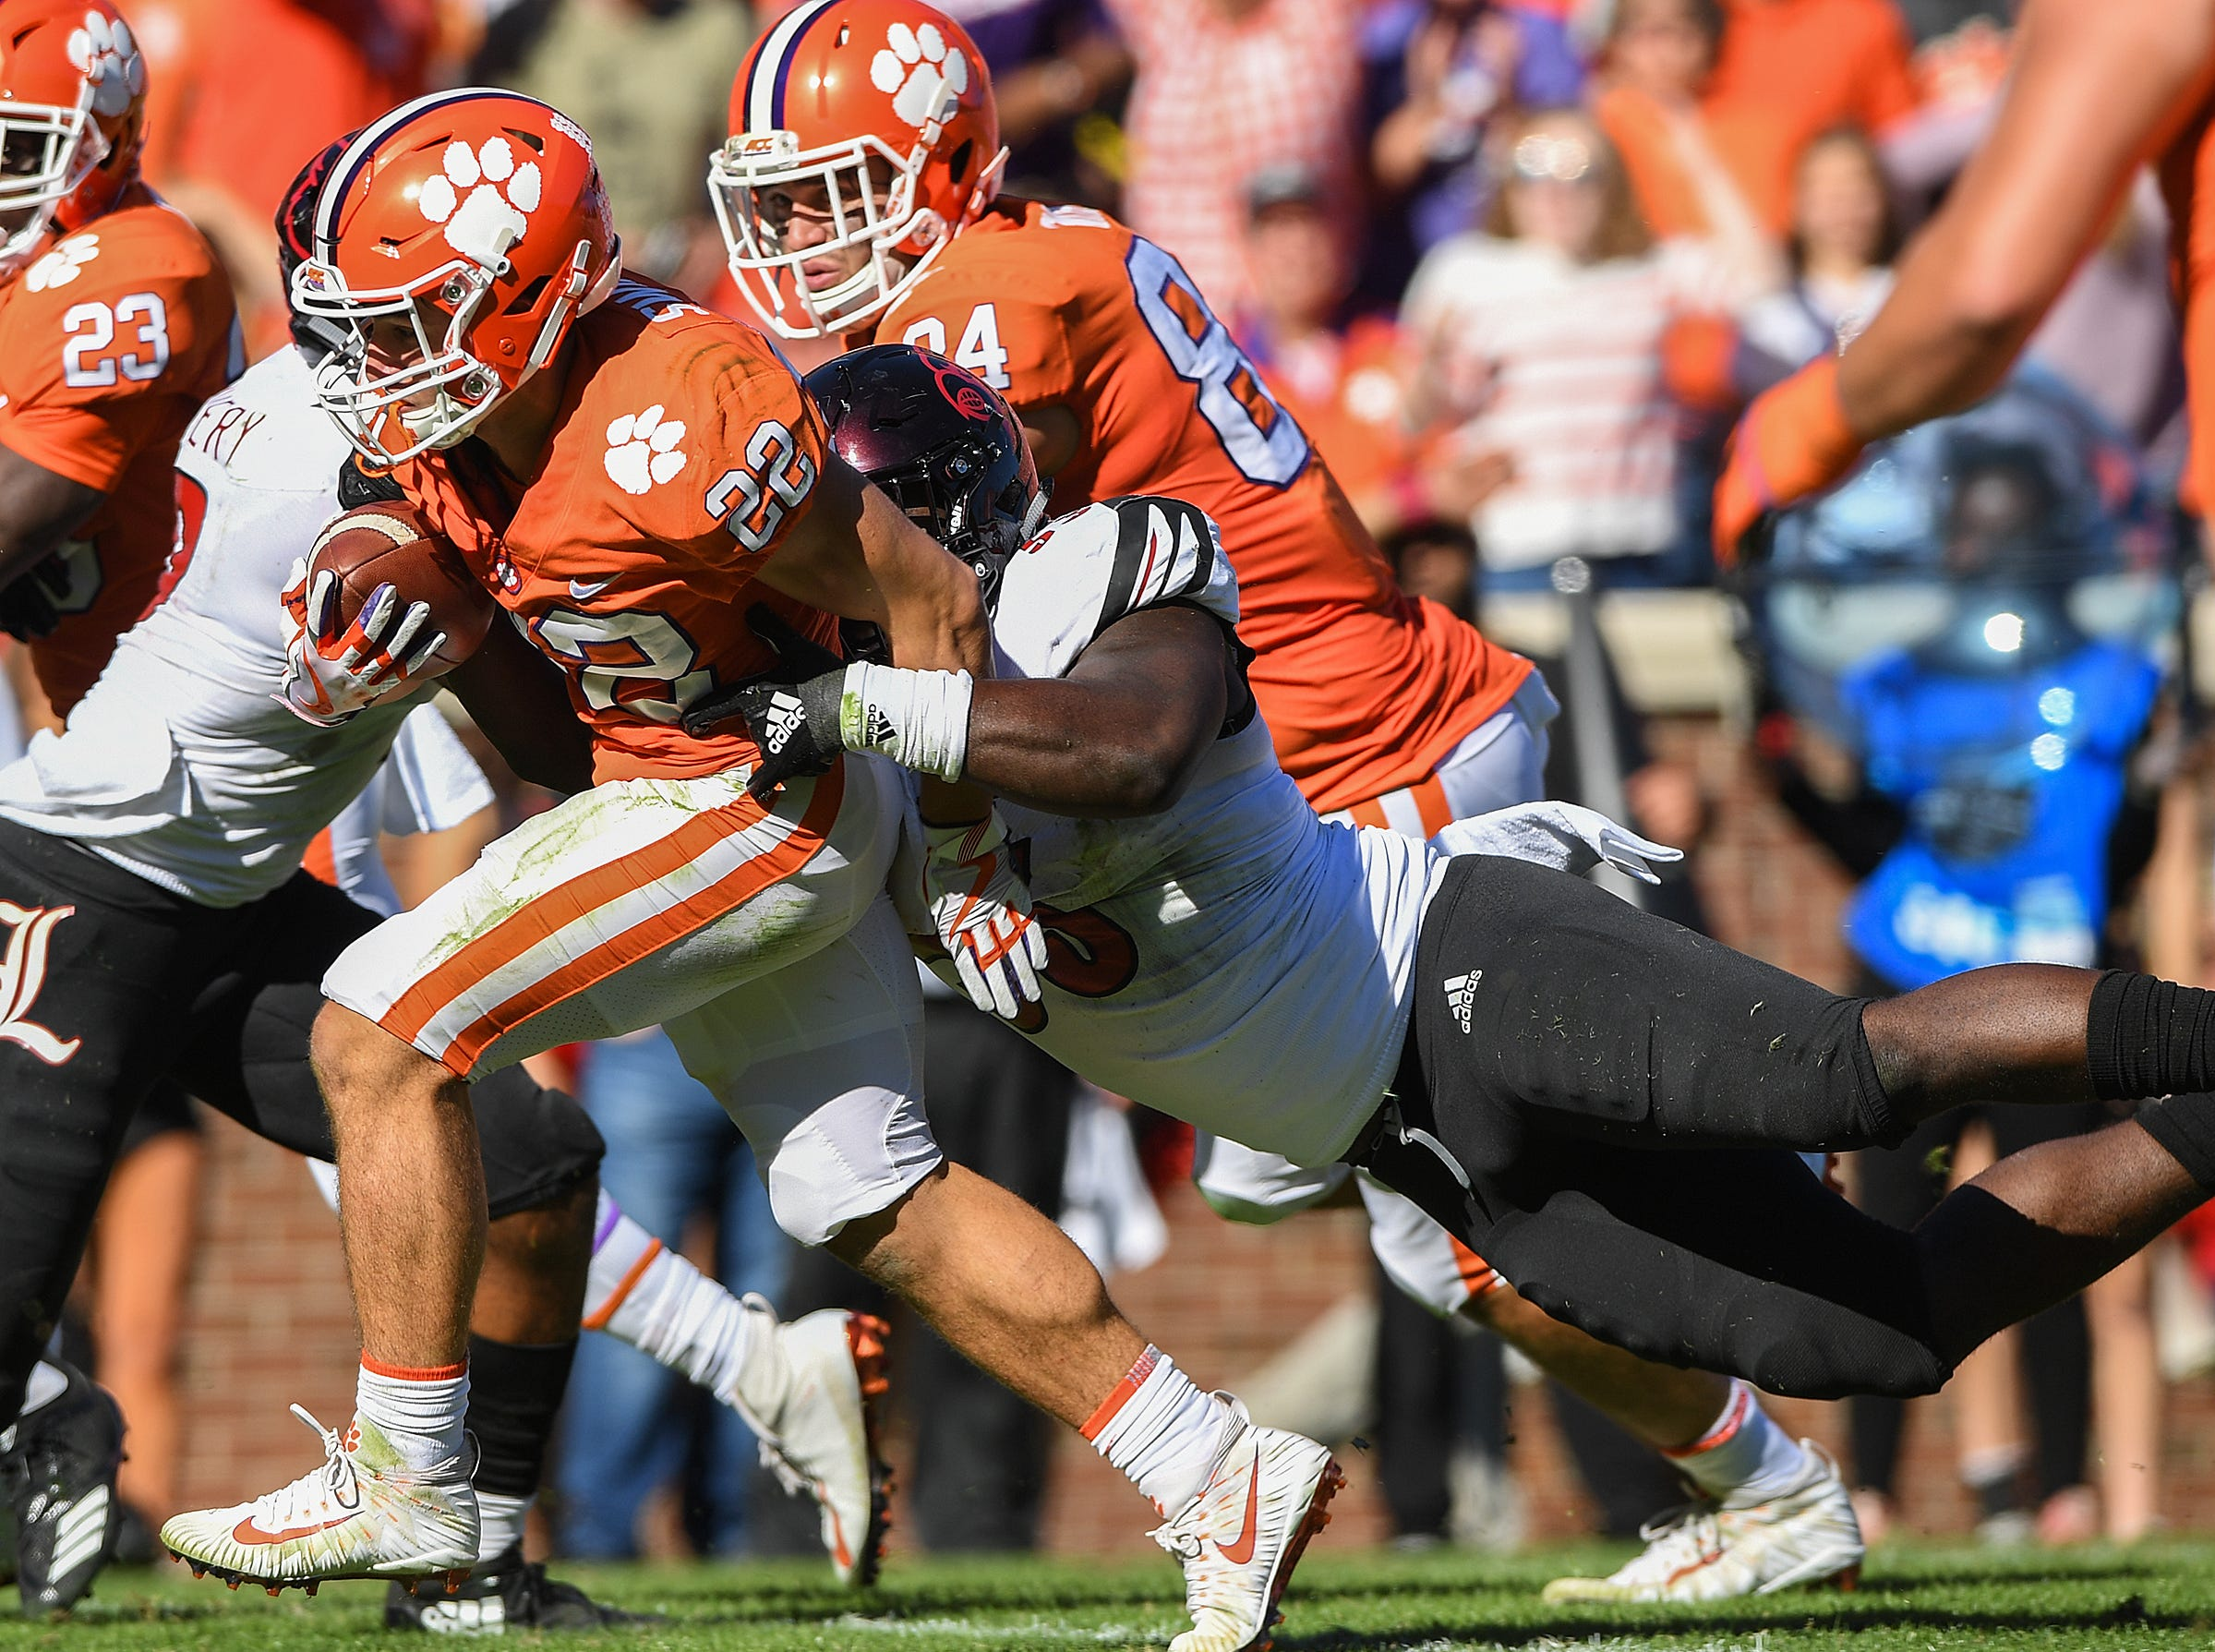 Clemson wide receiver Will Swinney (22) breaks free from Louisville defensive end Amonte Caban (53) to score during the 4th quarter Saturday, November 3, 2018 at Clemson's Memorial Stadium.